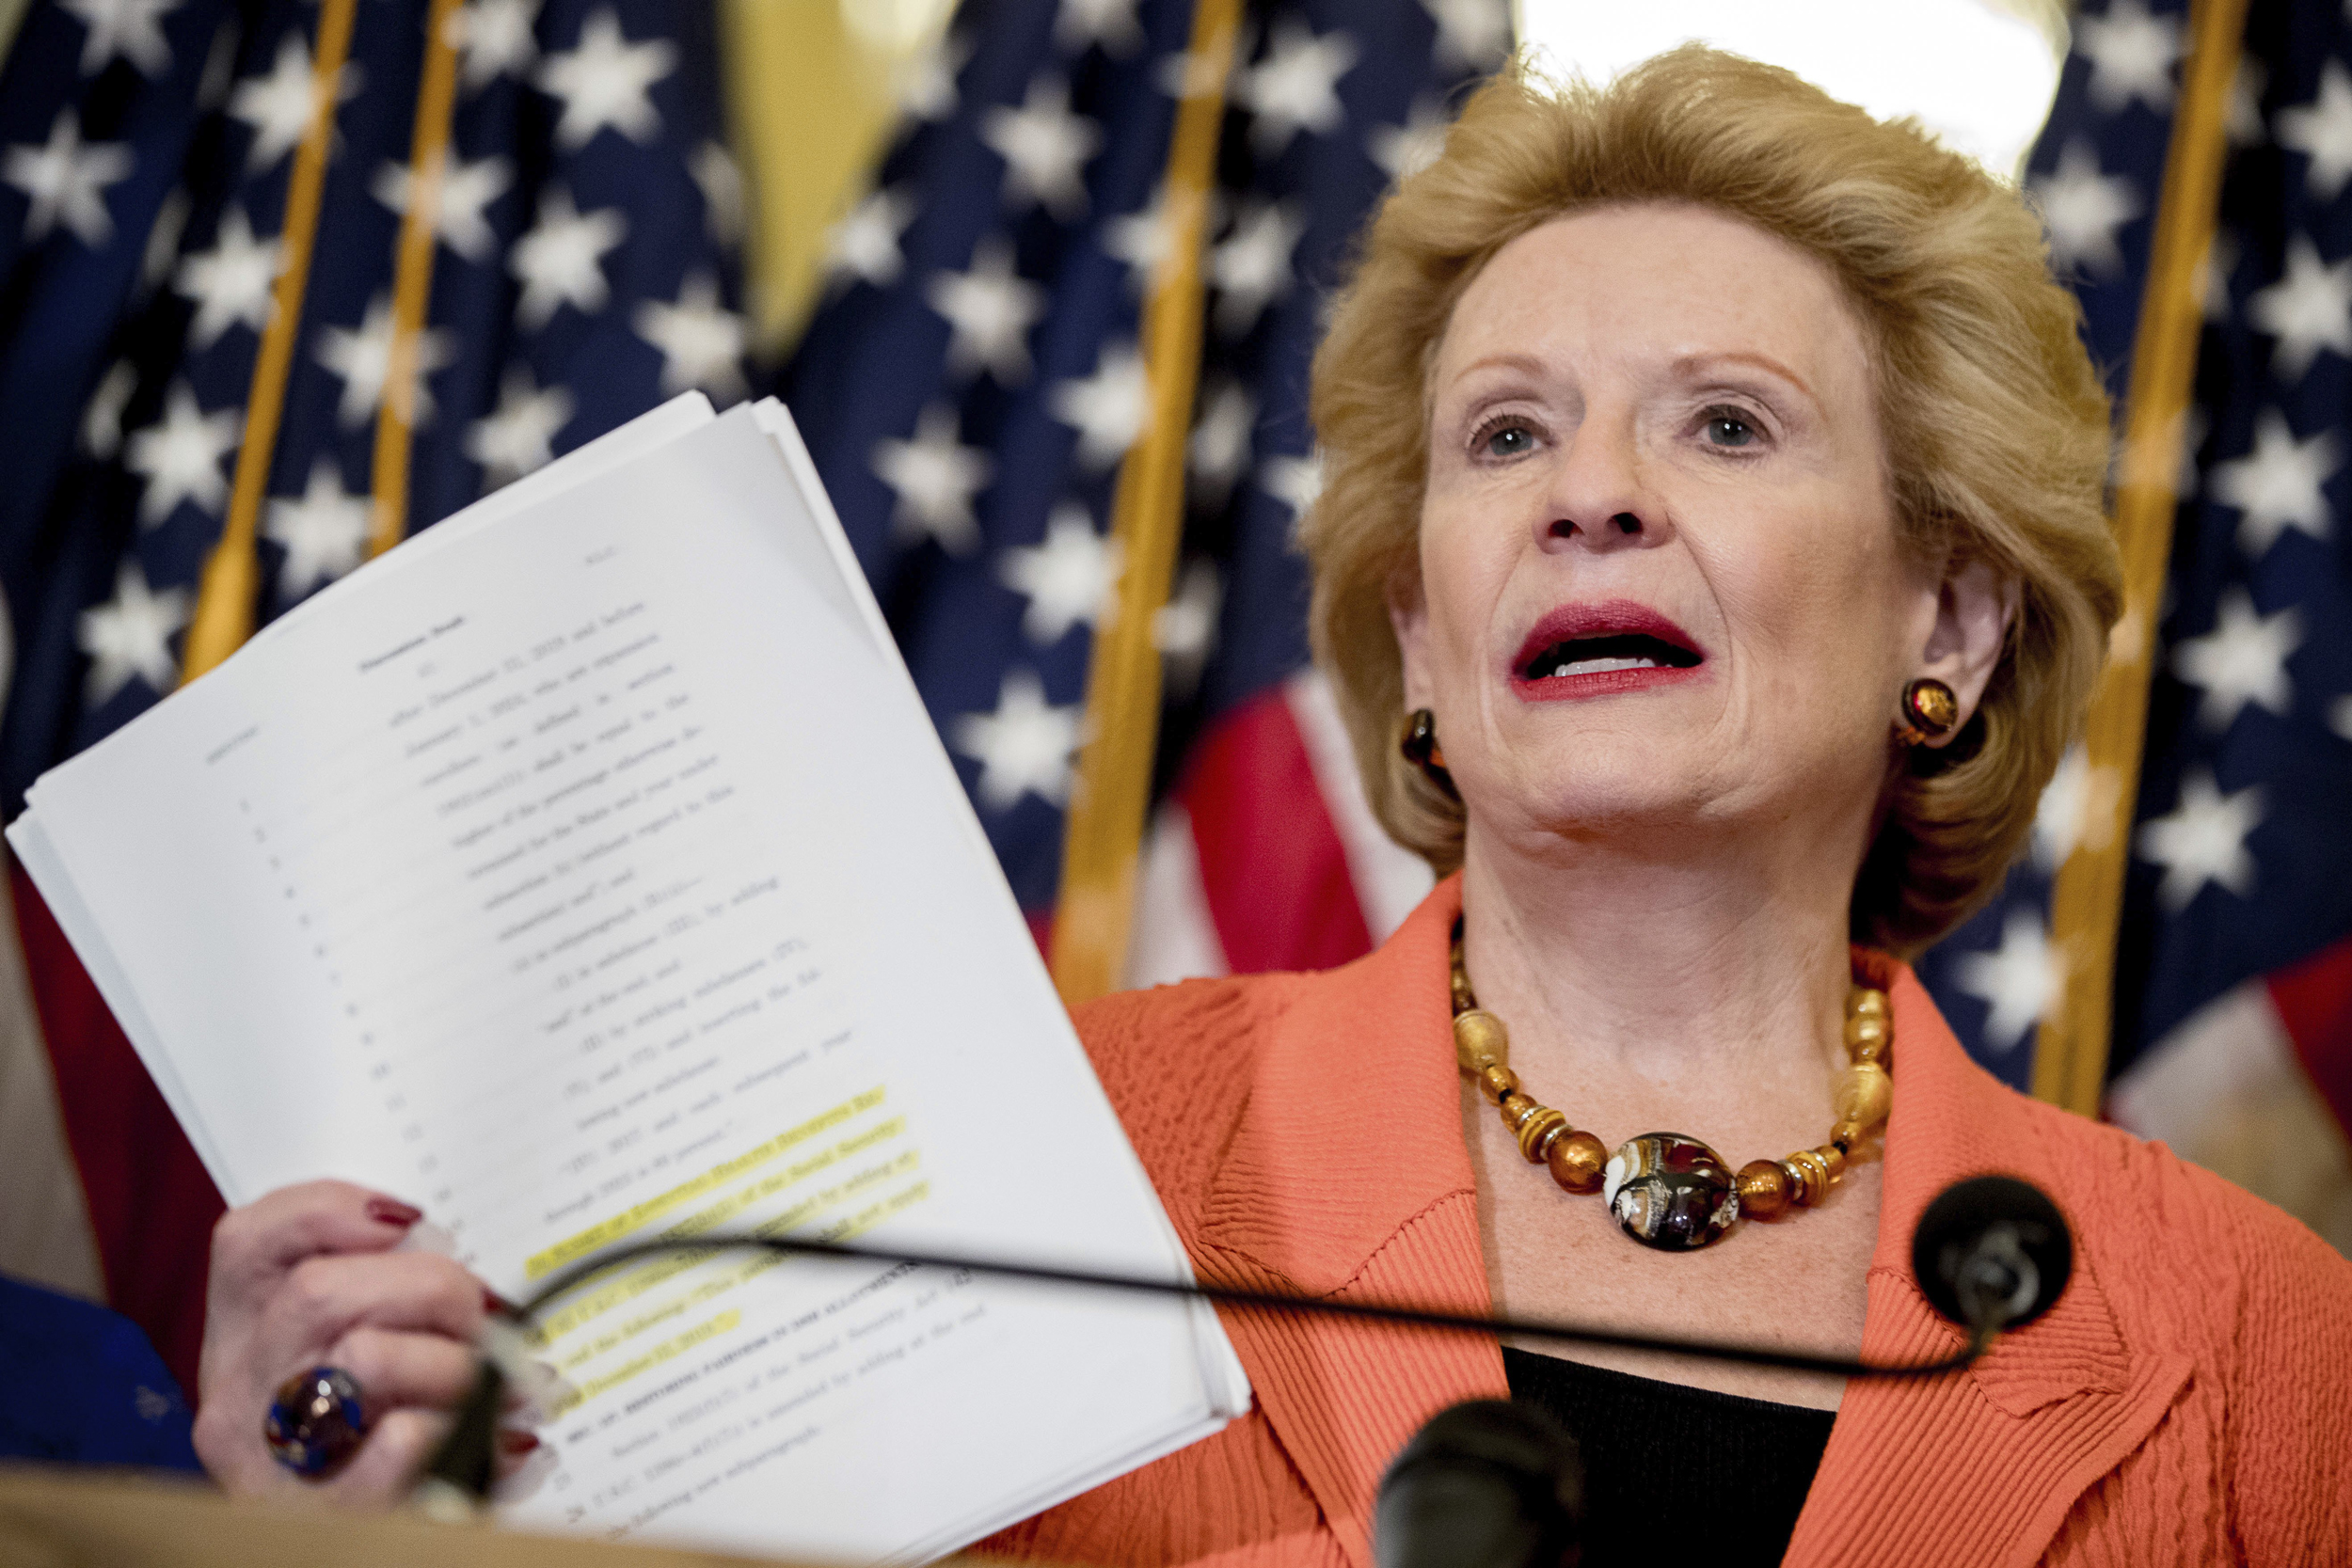 Image: Debbie Stabenow holds up a copy of the proposed Senate Republican health bill